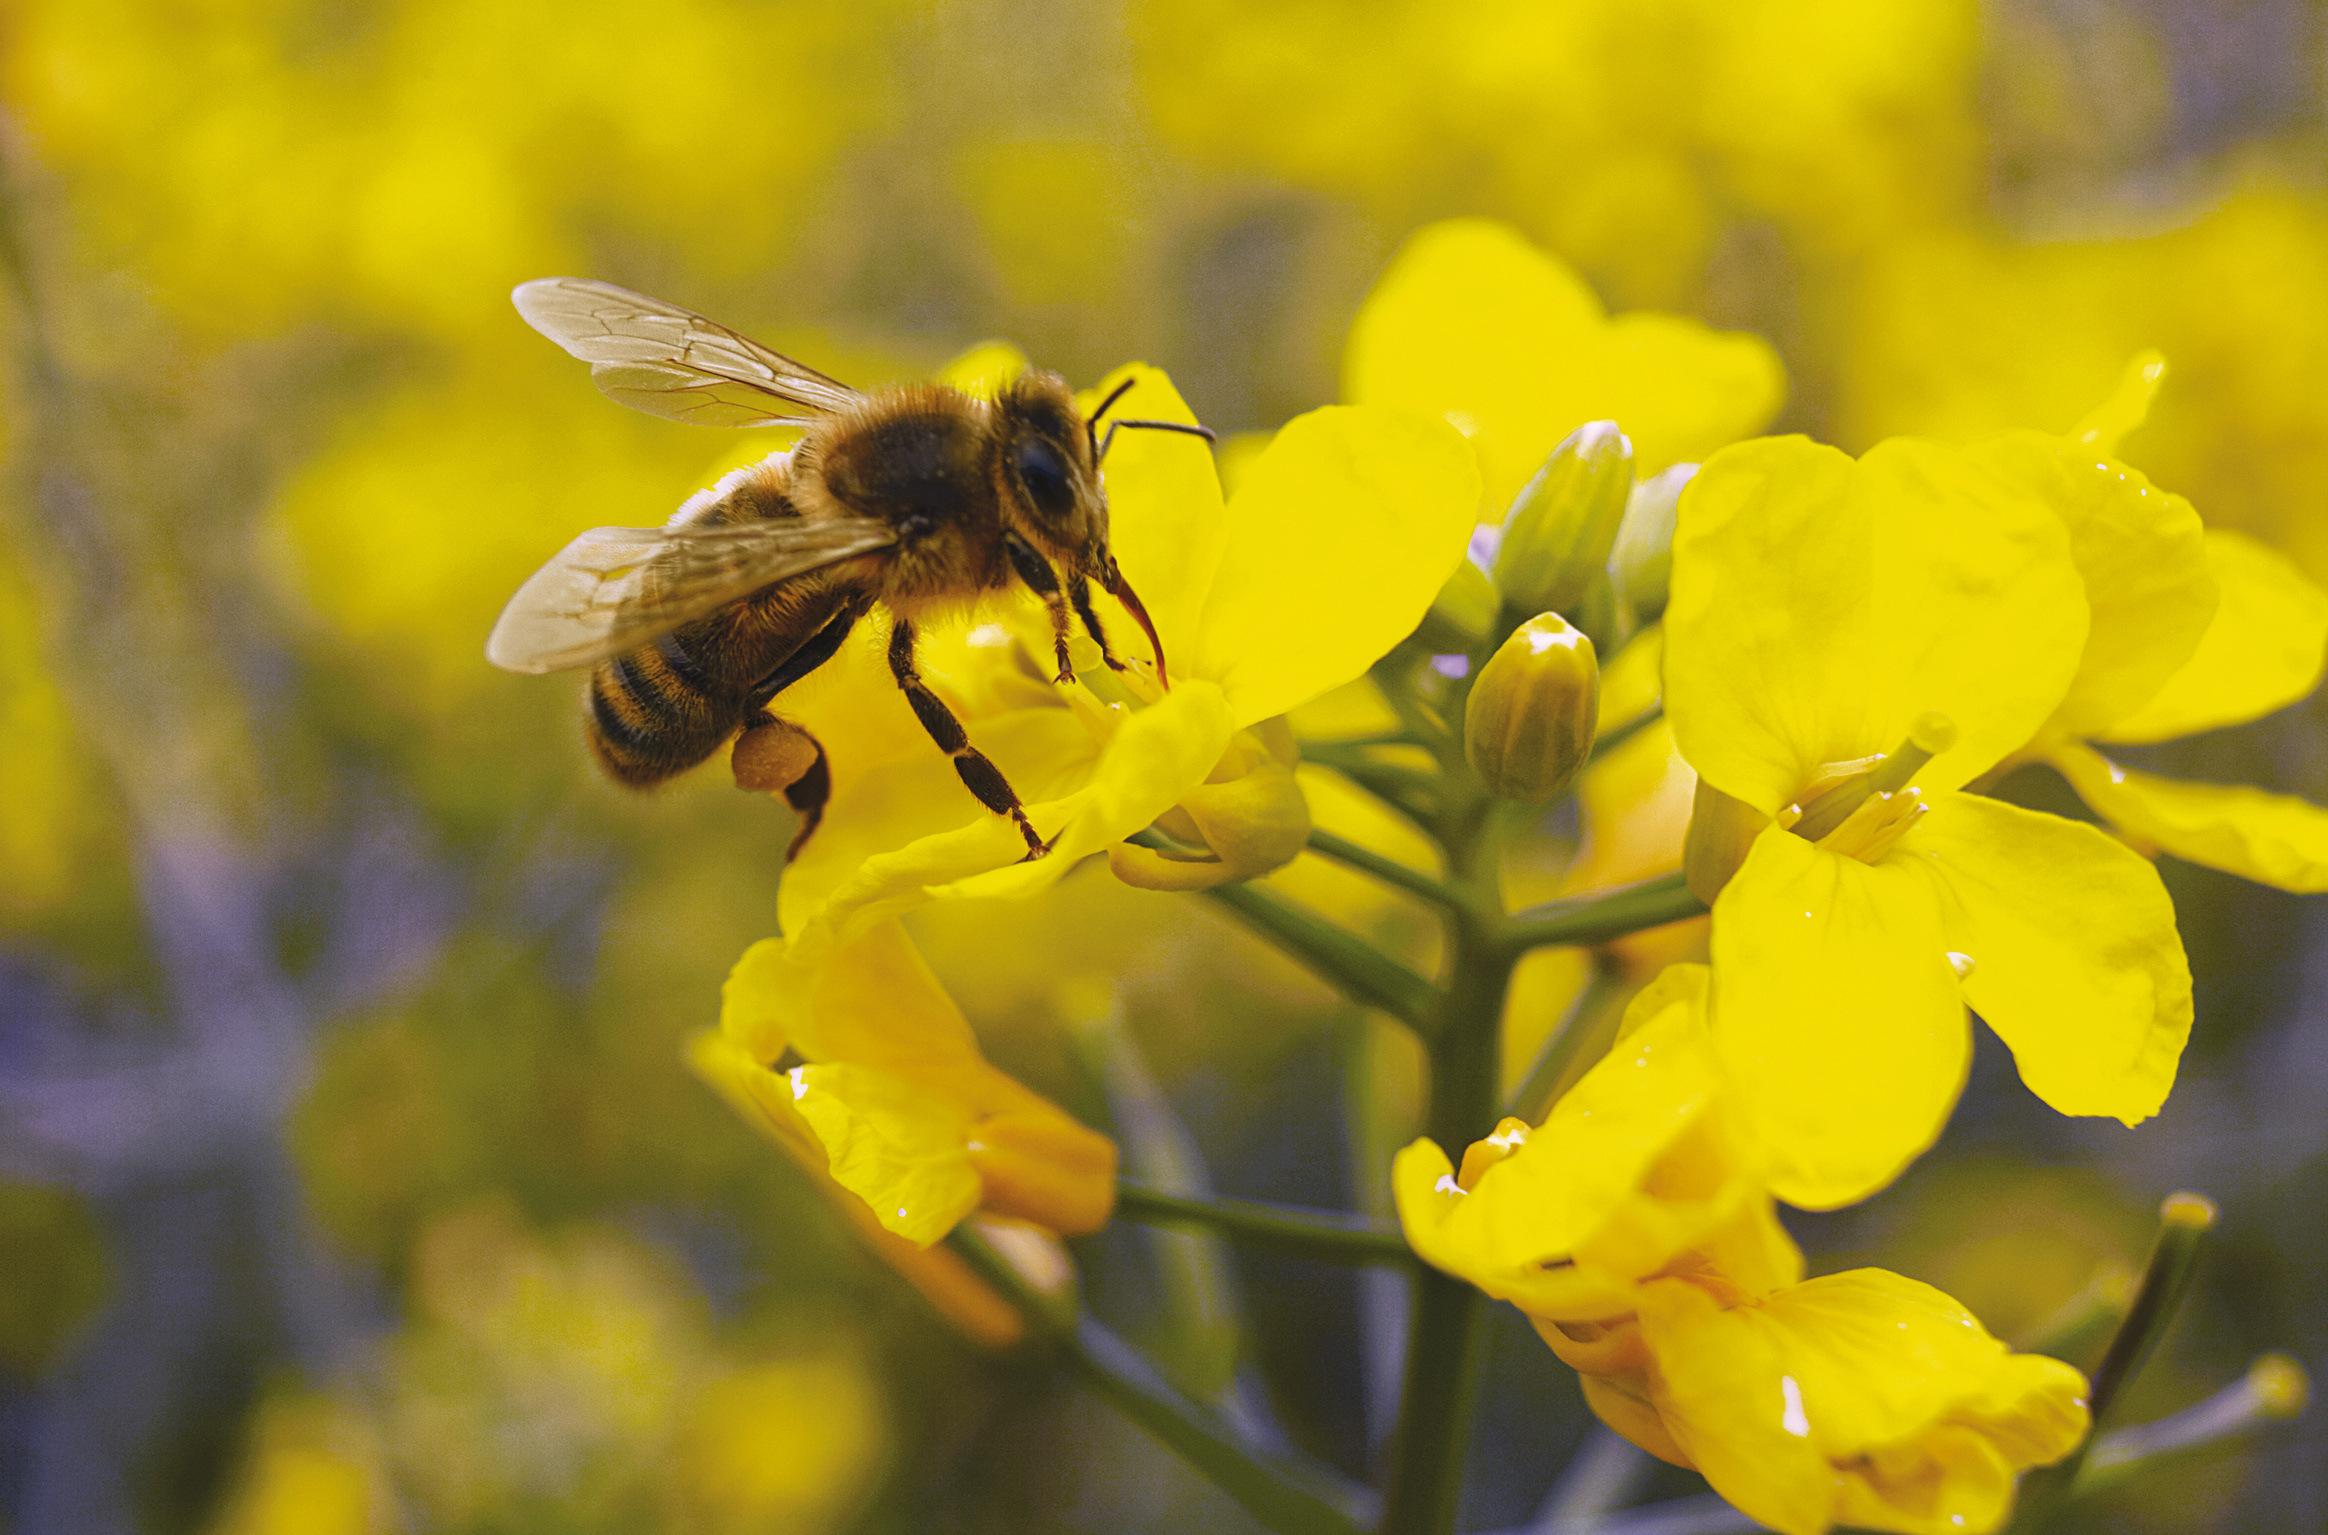 EU court upholds ban on insecticides